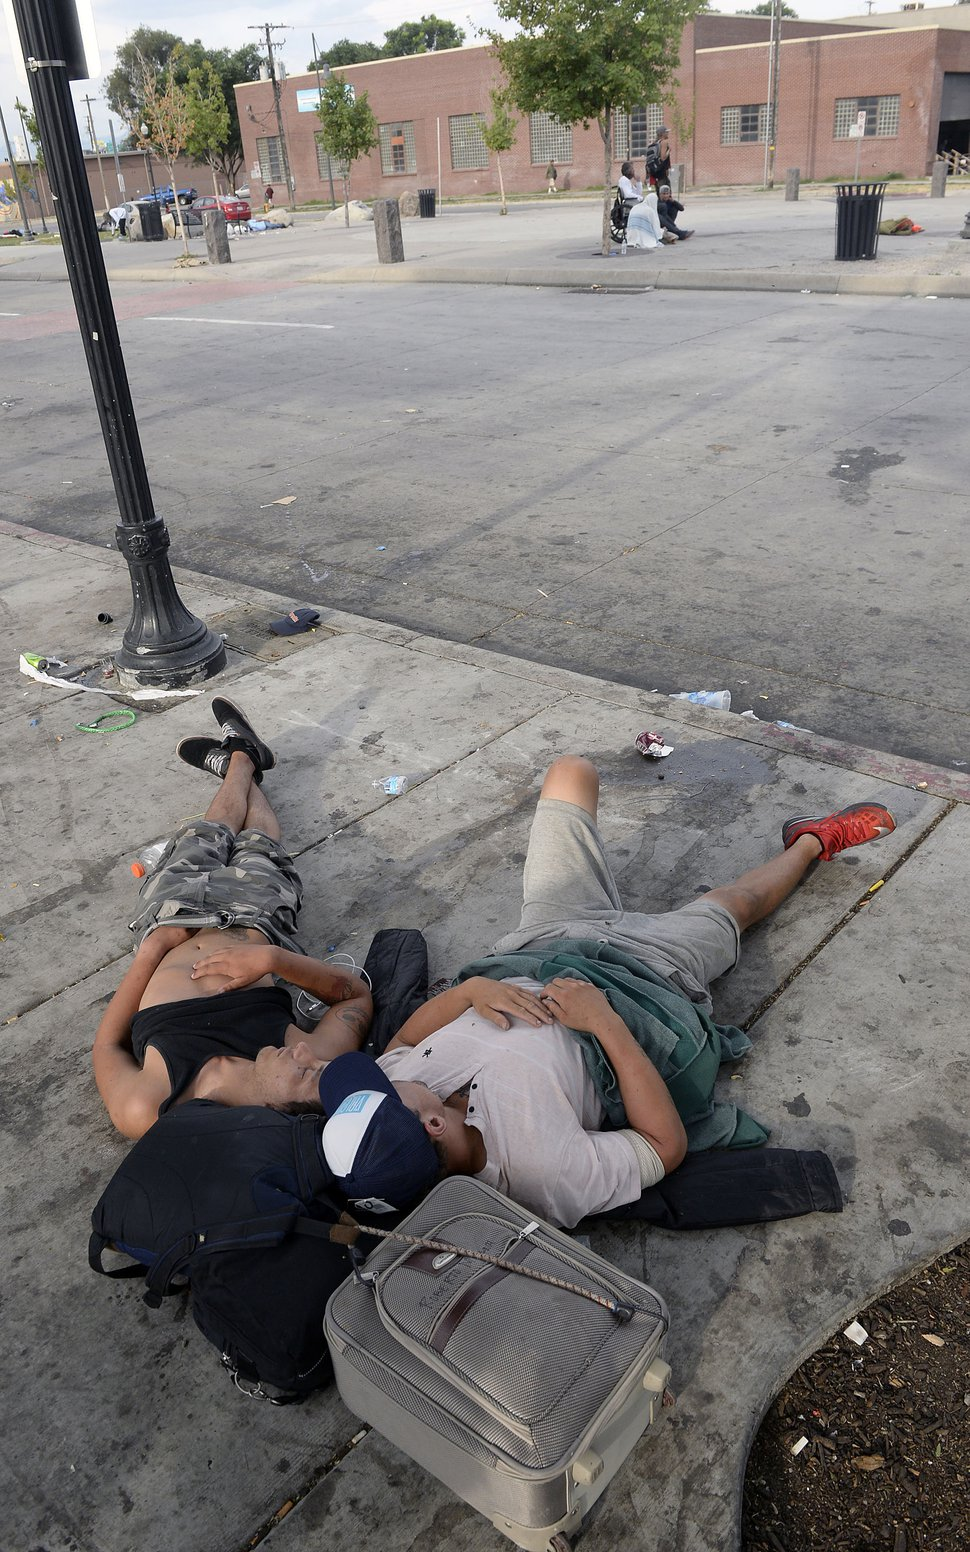 Al Hartmann | The Salt Lake Tribune People sleep on sidewalk near 200 S. and 500 W. Wednesday morning July 19. Camping on the street is a class B misdemeanor and can now be enforced.